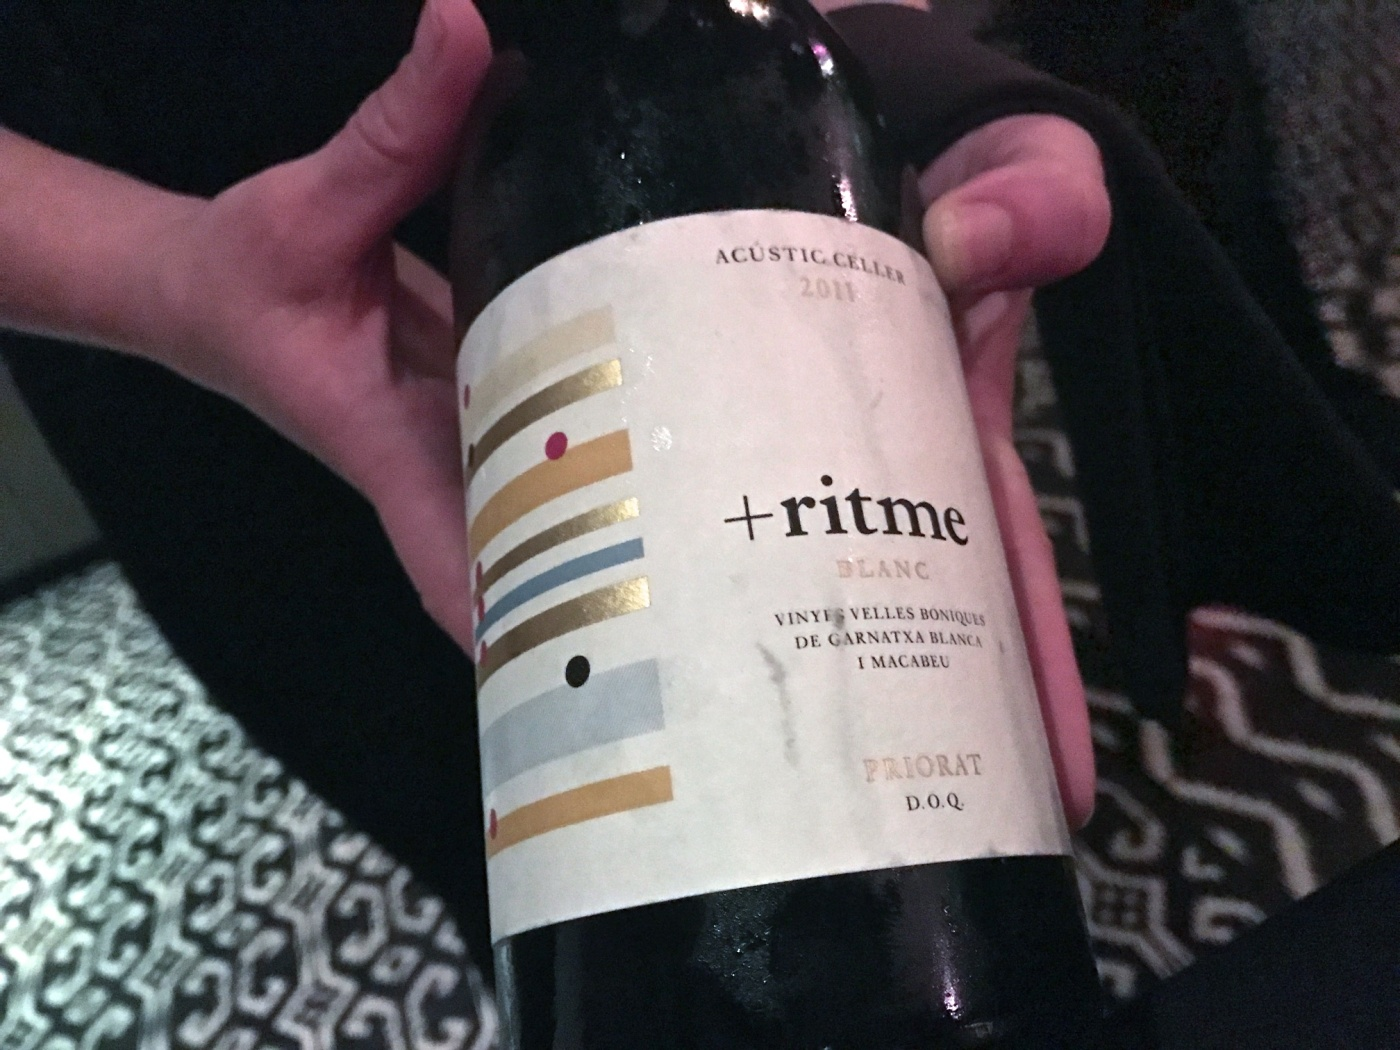 2011 Acustic Celler Ritme Blanc, Priorat DOCa, Spain